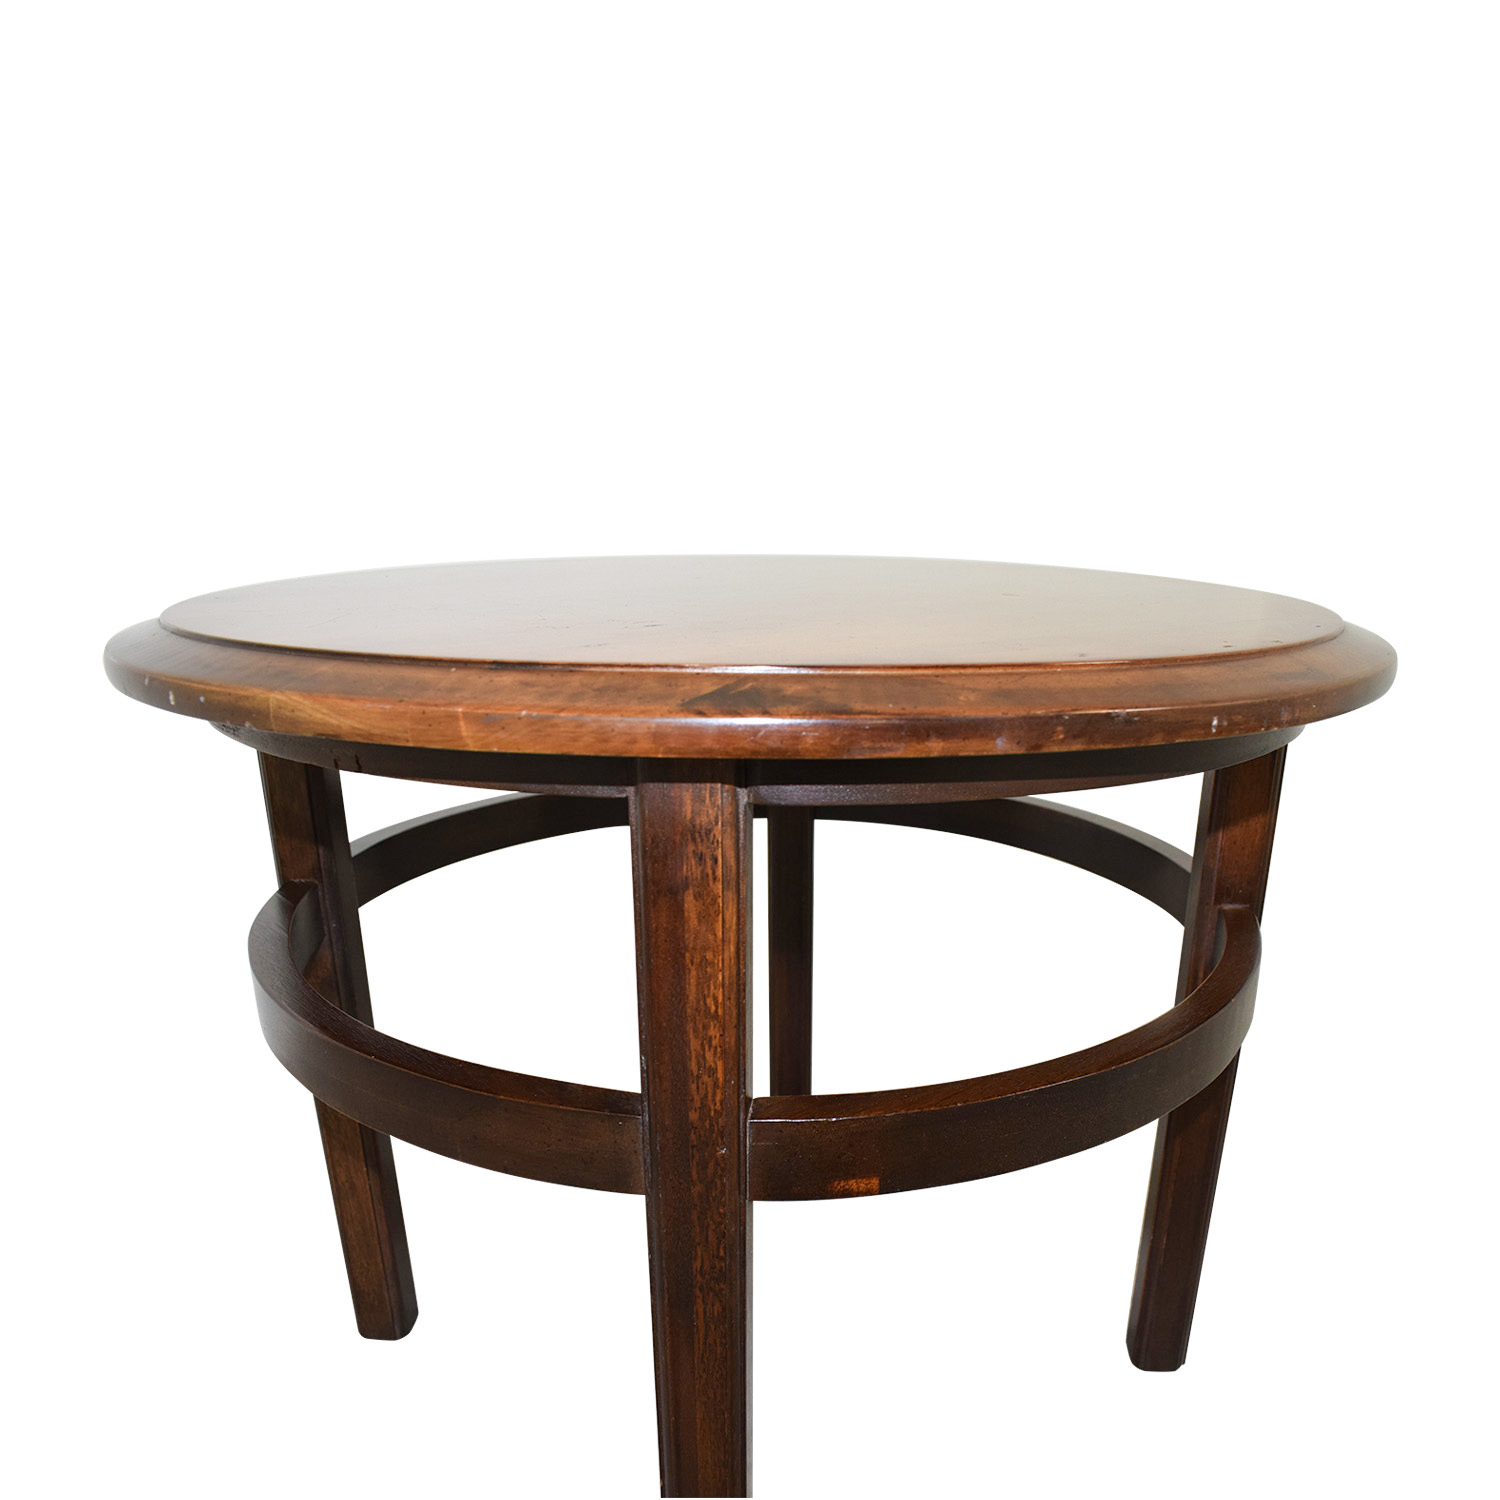 modern table ideas surprising small accent tables with gorgeous round for foyer covers refer affordable pottery barn console inch qvc furniture beach inspired bedroom nautical